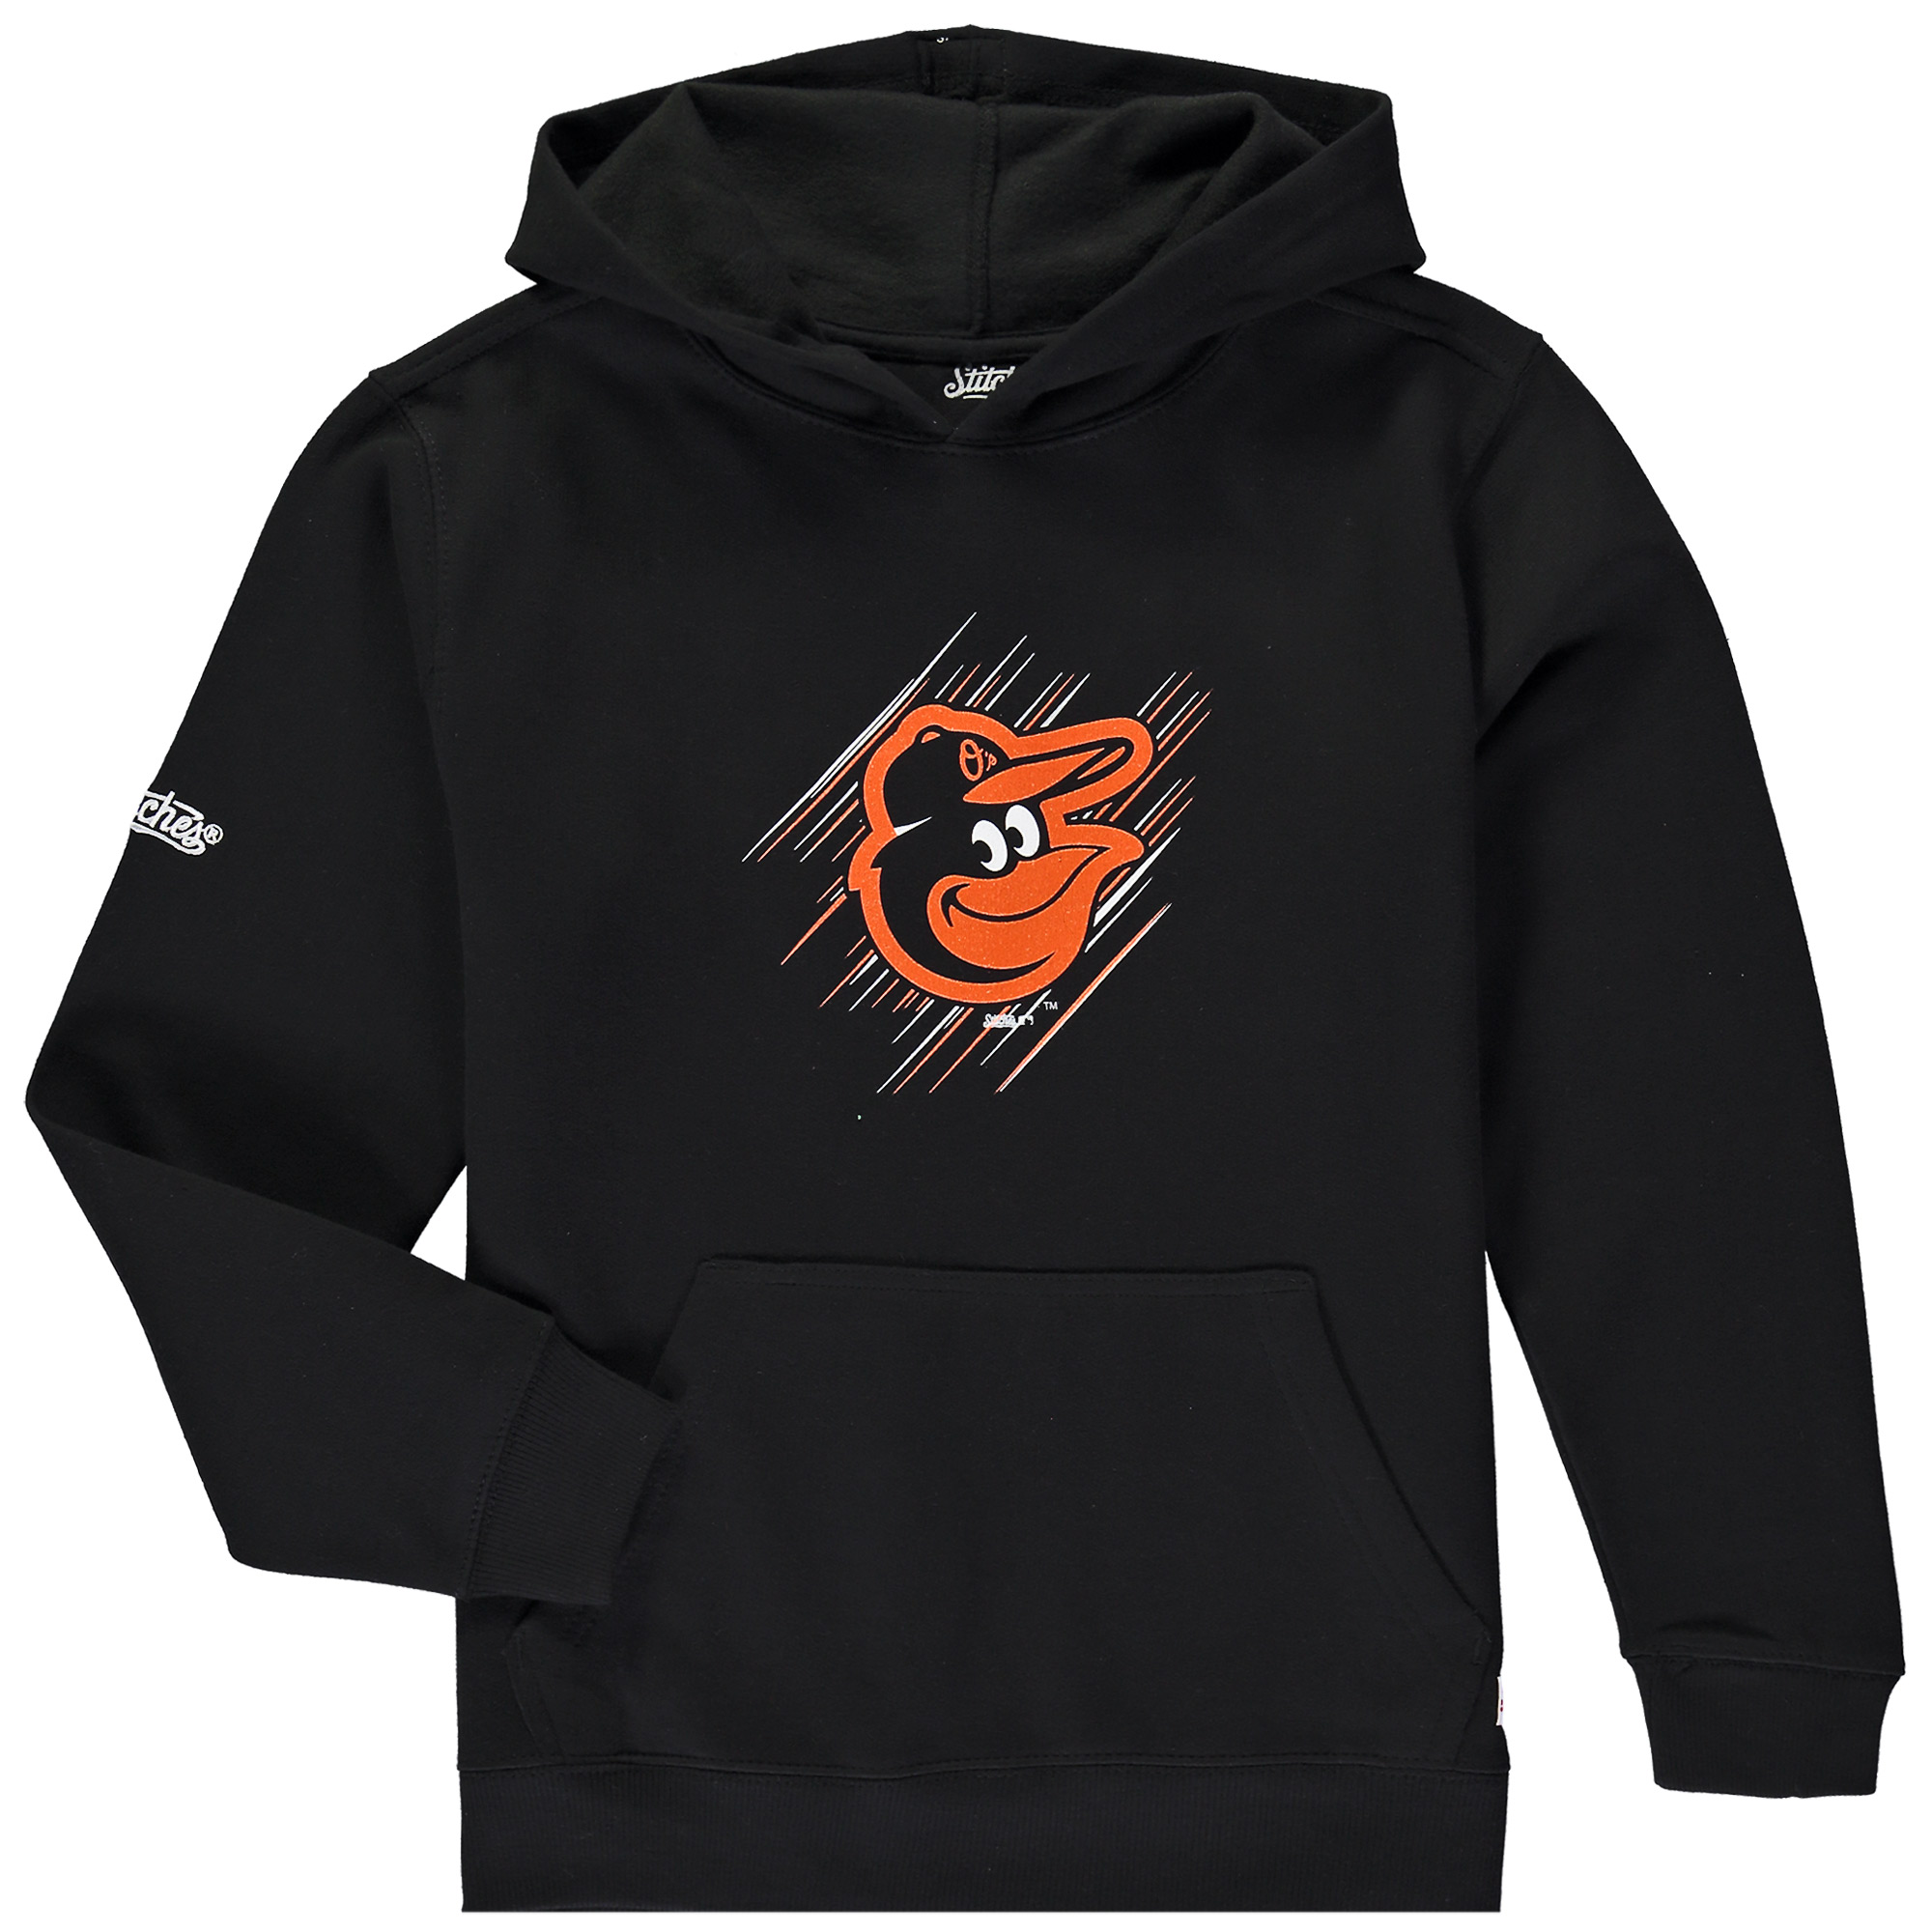 Baltimore Orioles Stitches Youth Pullover Hoodie - Black